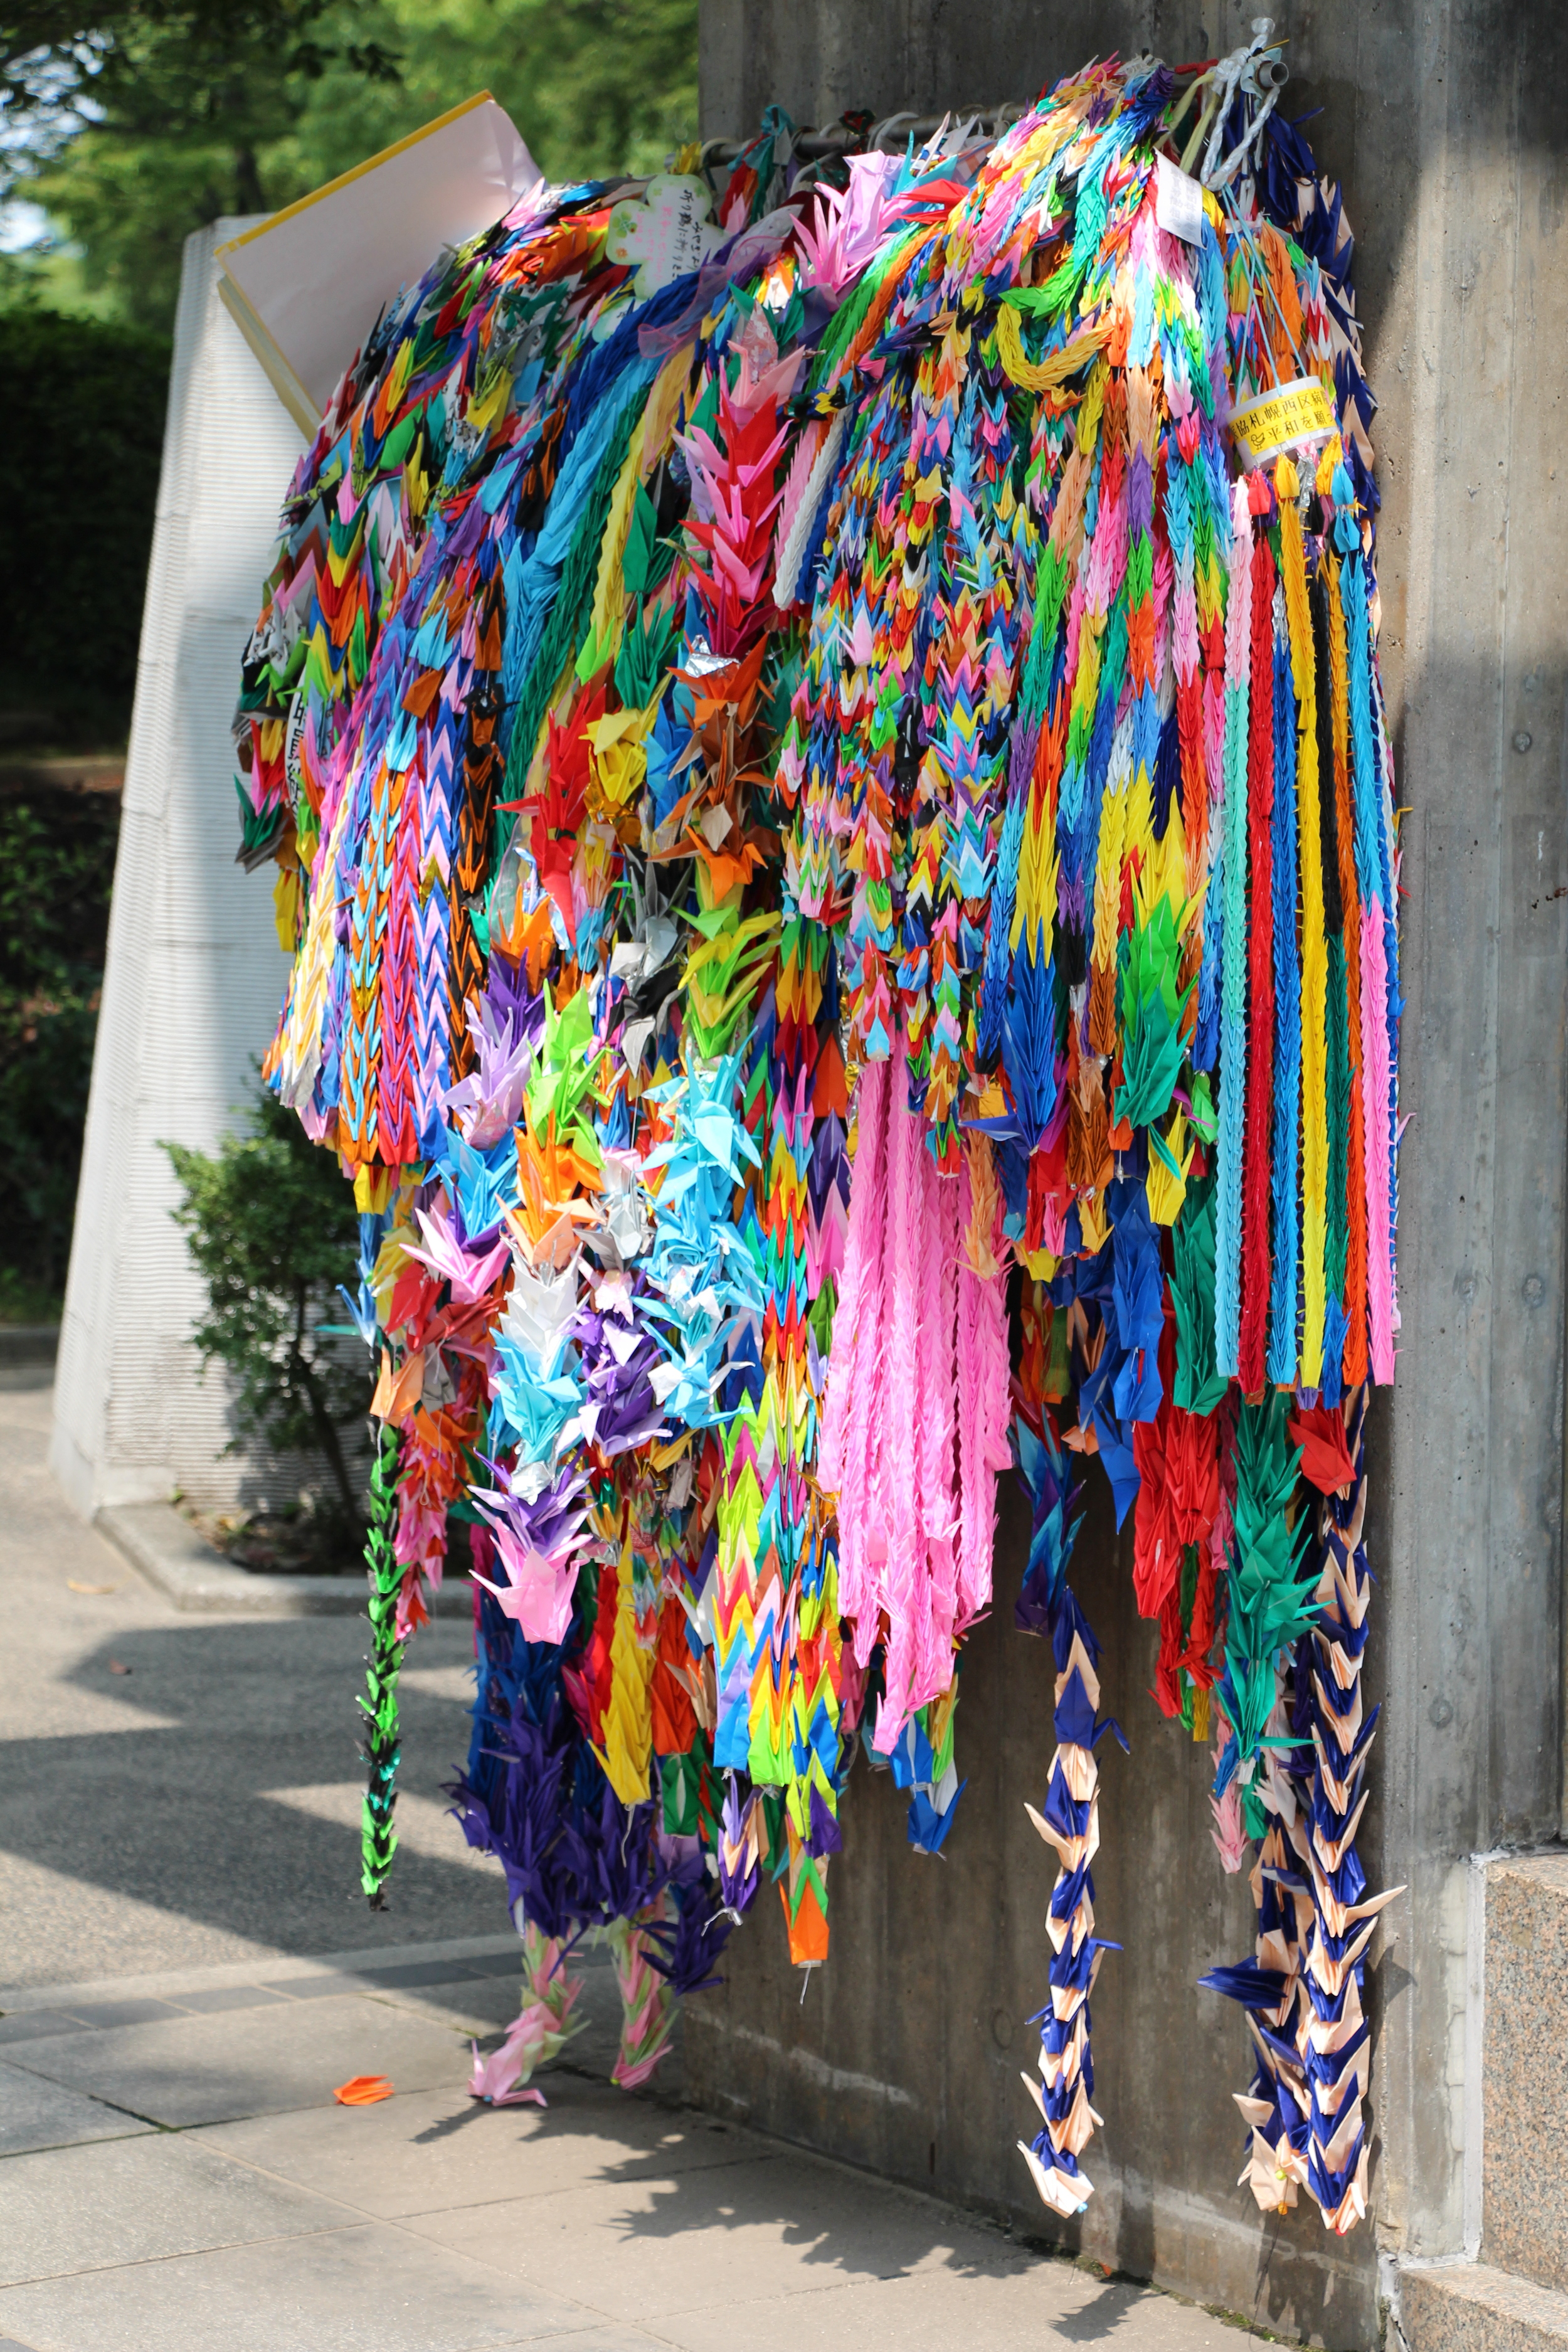 A few of the many paper crane chains brought to the children's memorial in Hiroshima.